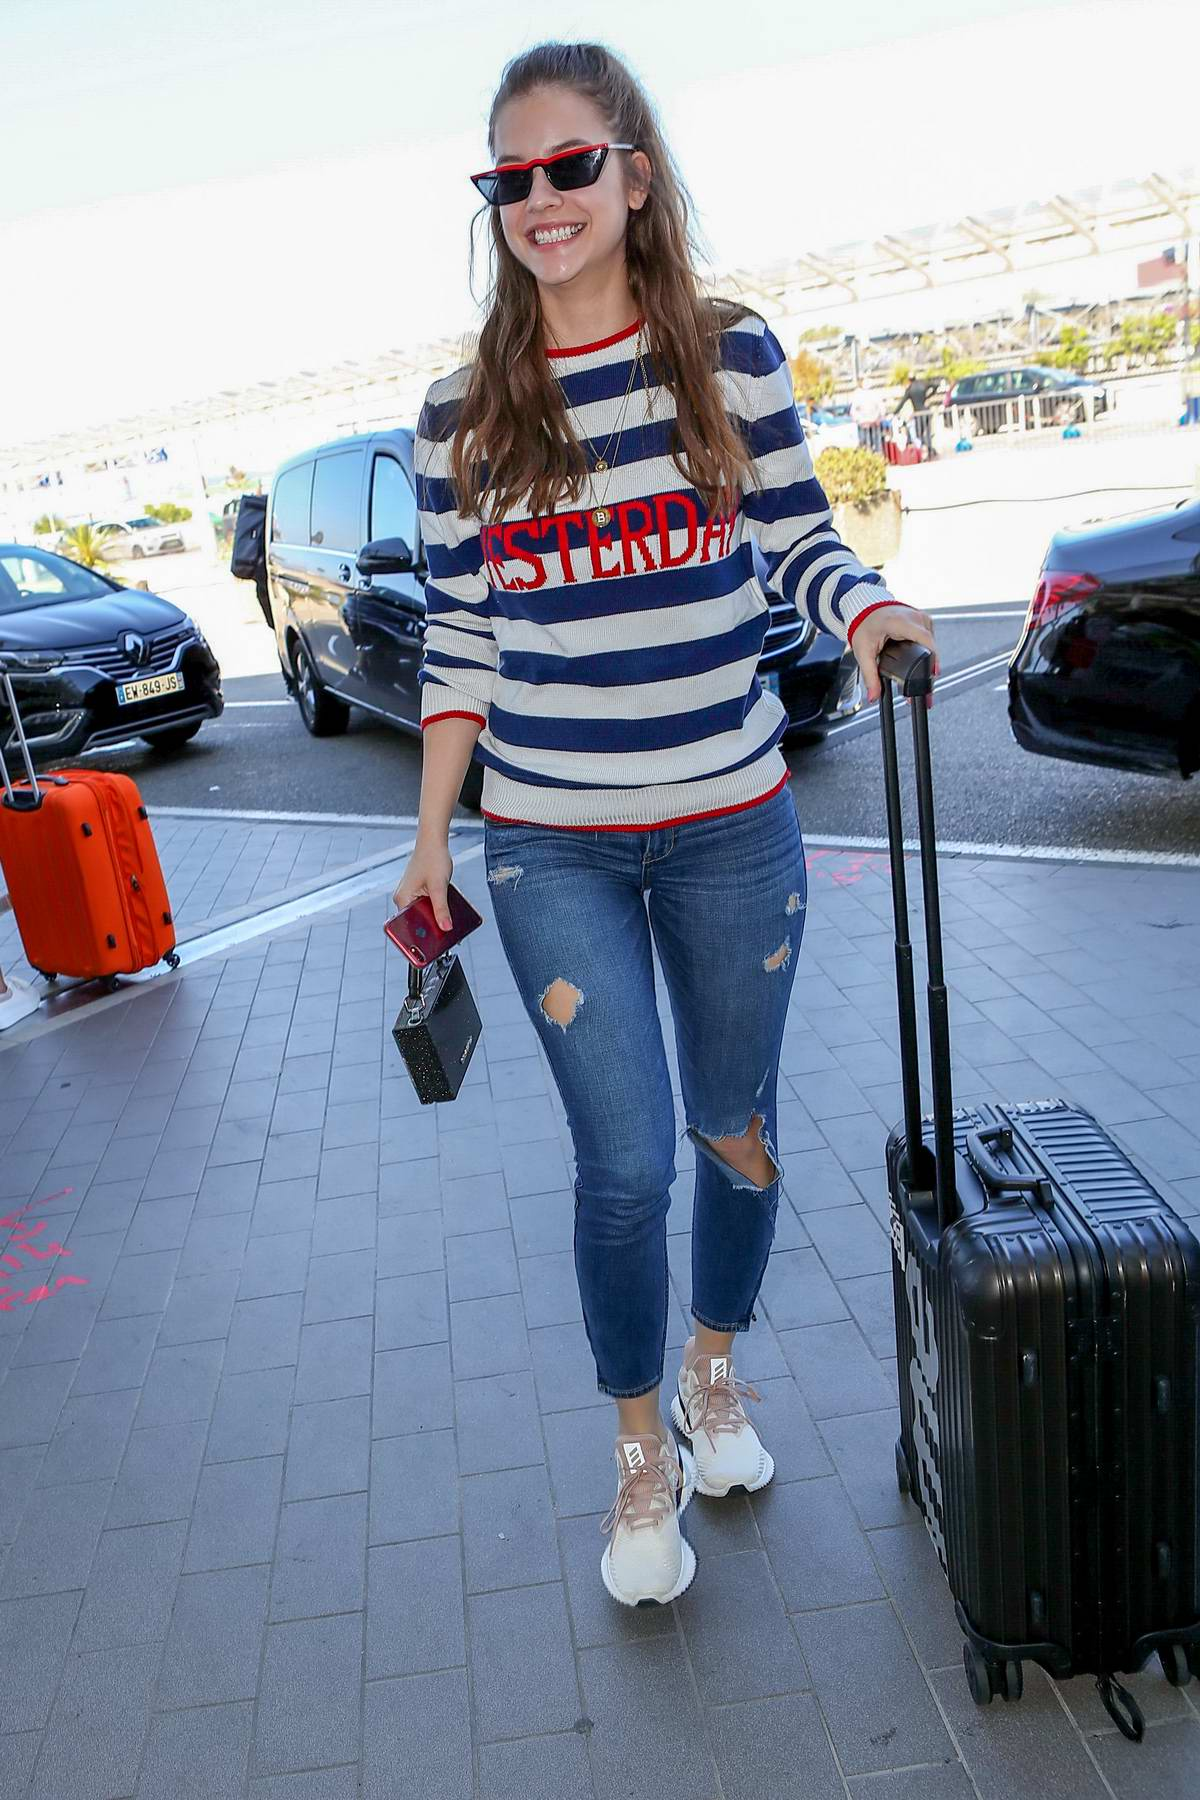 Barbara Palvin seen arriving at Nice airport as part as the 71st Cannes Film Festival in Nice, France